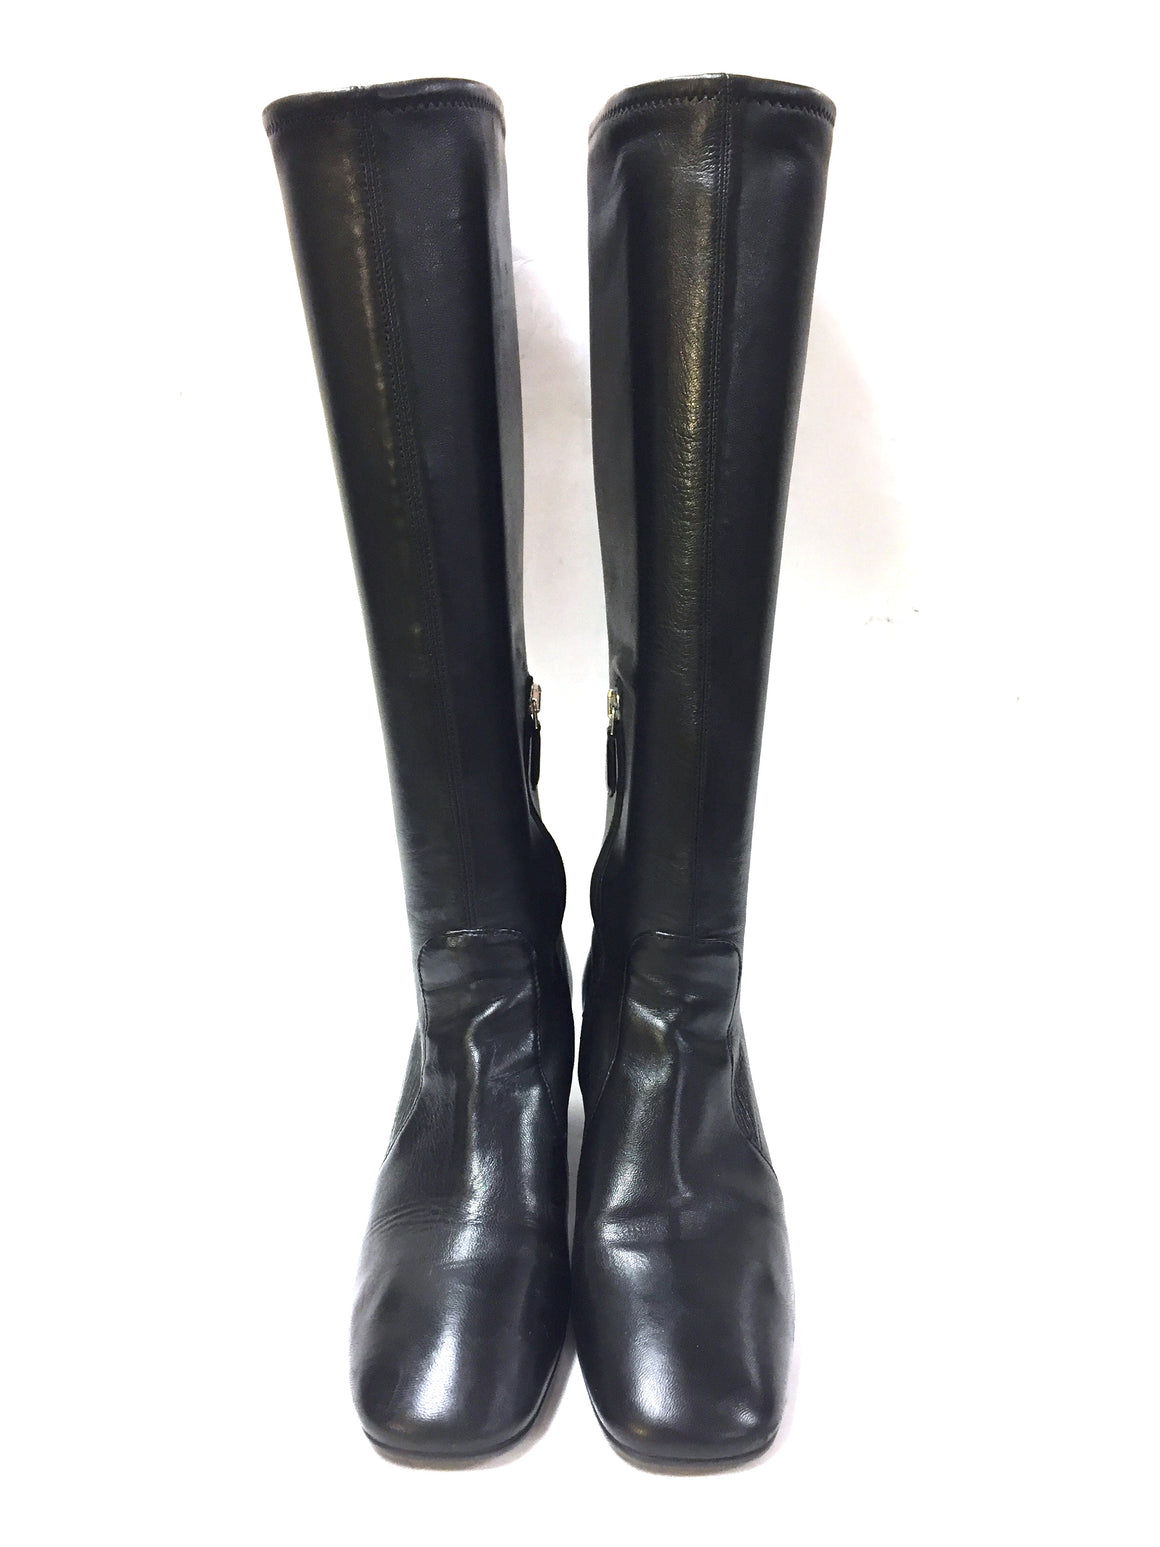 PRADA Black Stretch Leather Block Heel Tall Boots Size: 36.5 / 6.5